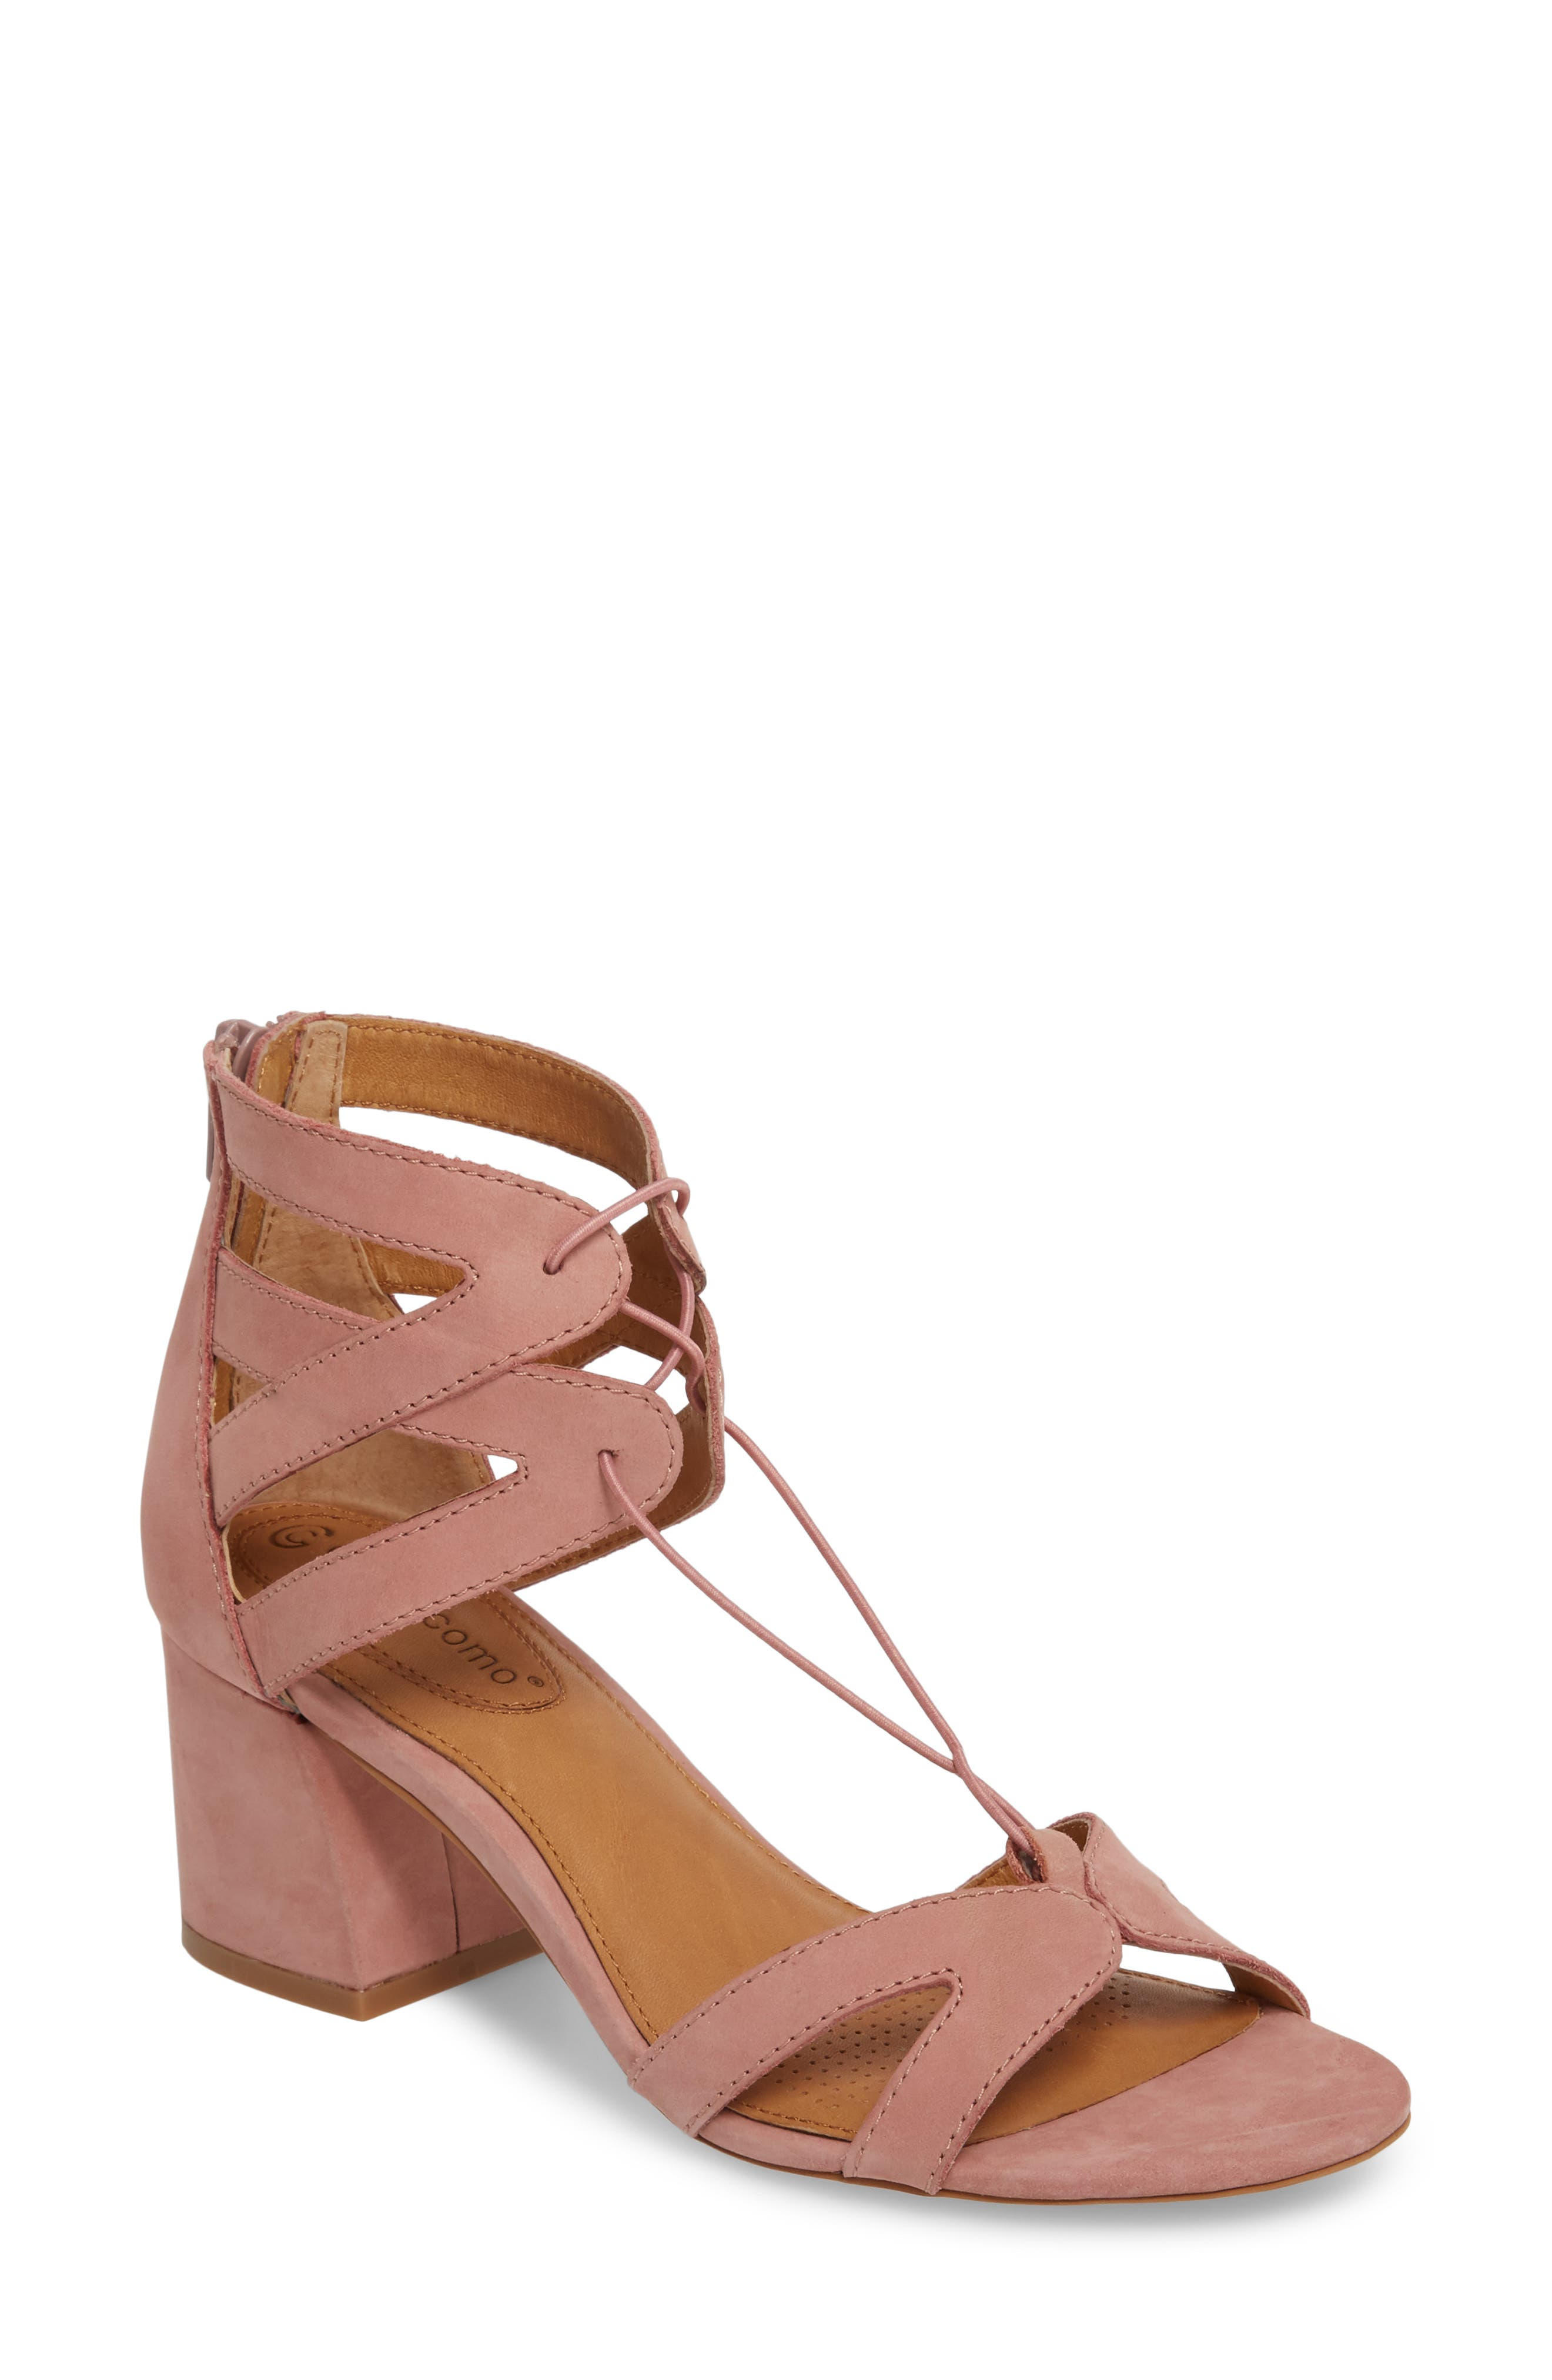 Lynne Sandal,                         Main,                         color, OLD ROSE LEATHER